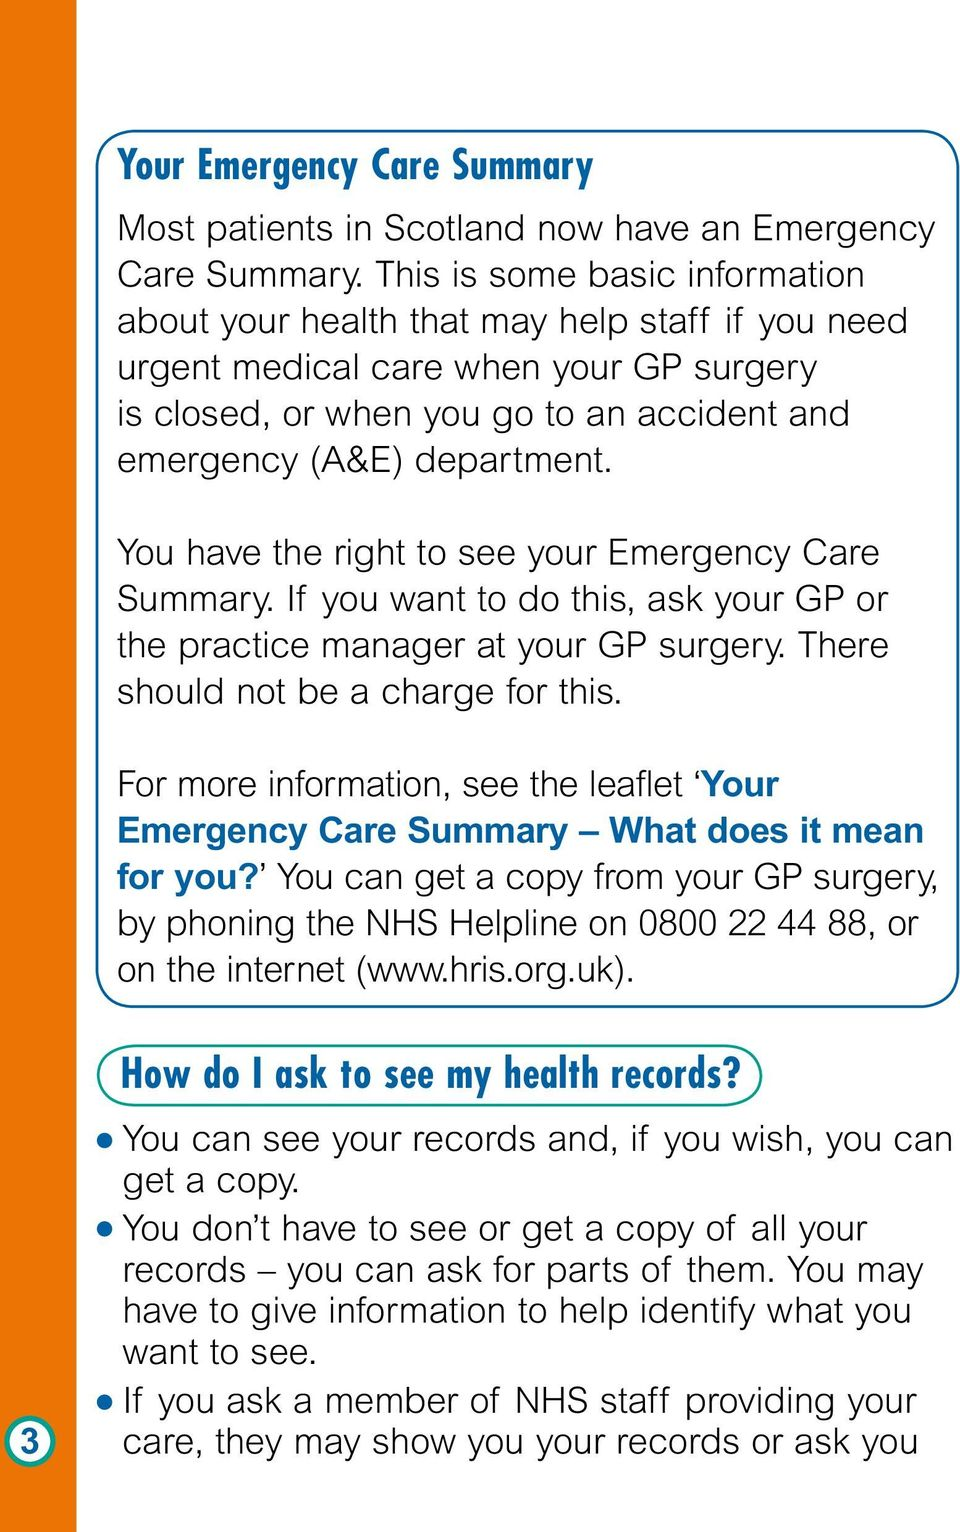 You have the right to see your Emergency Care Summary. If you want to do this, ask your GP or the practice manager at your GP surgery. There should not be a charge for this.